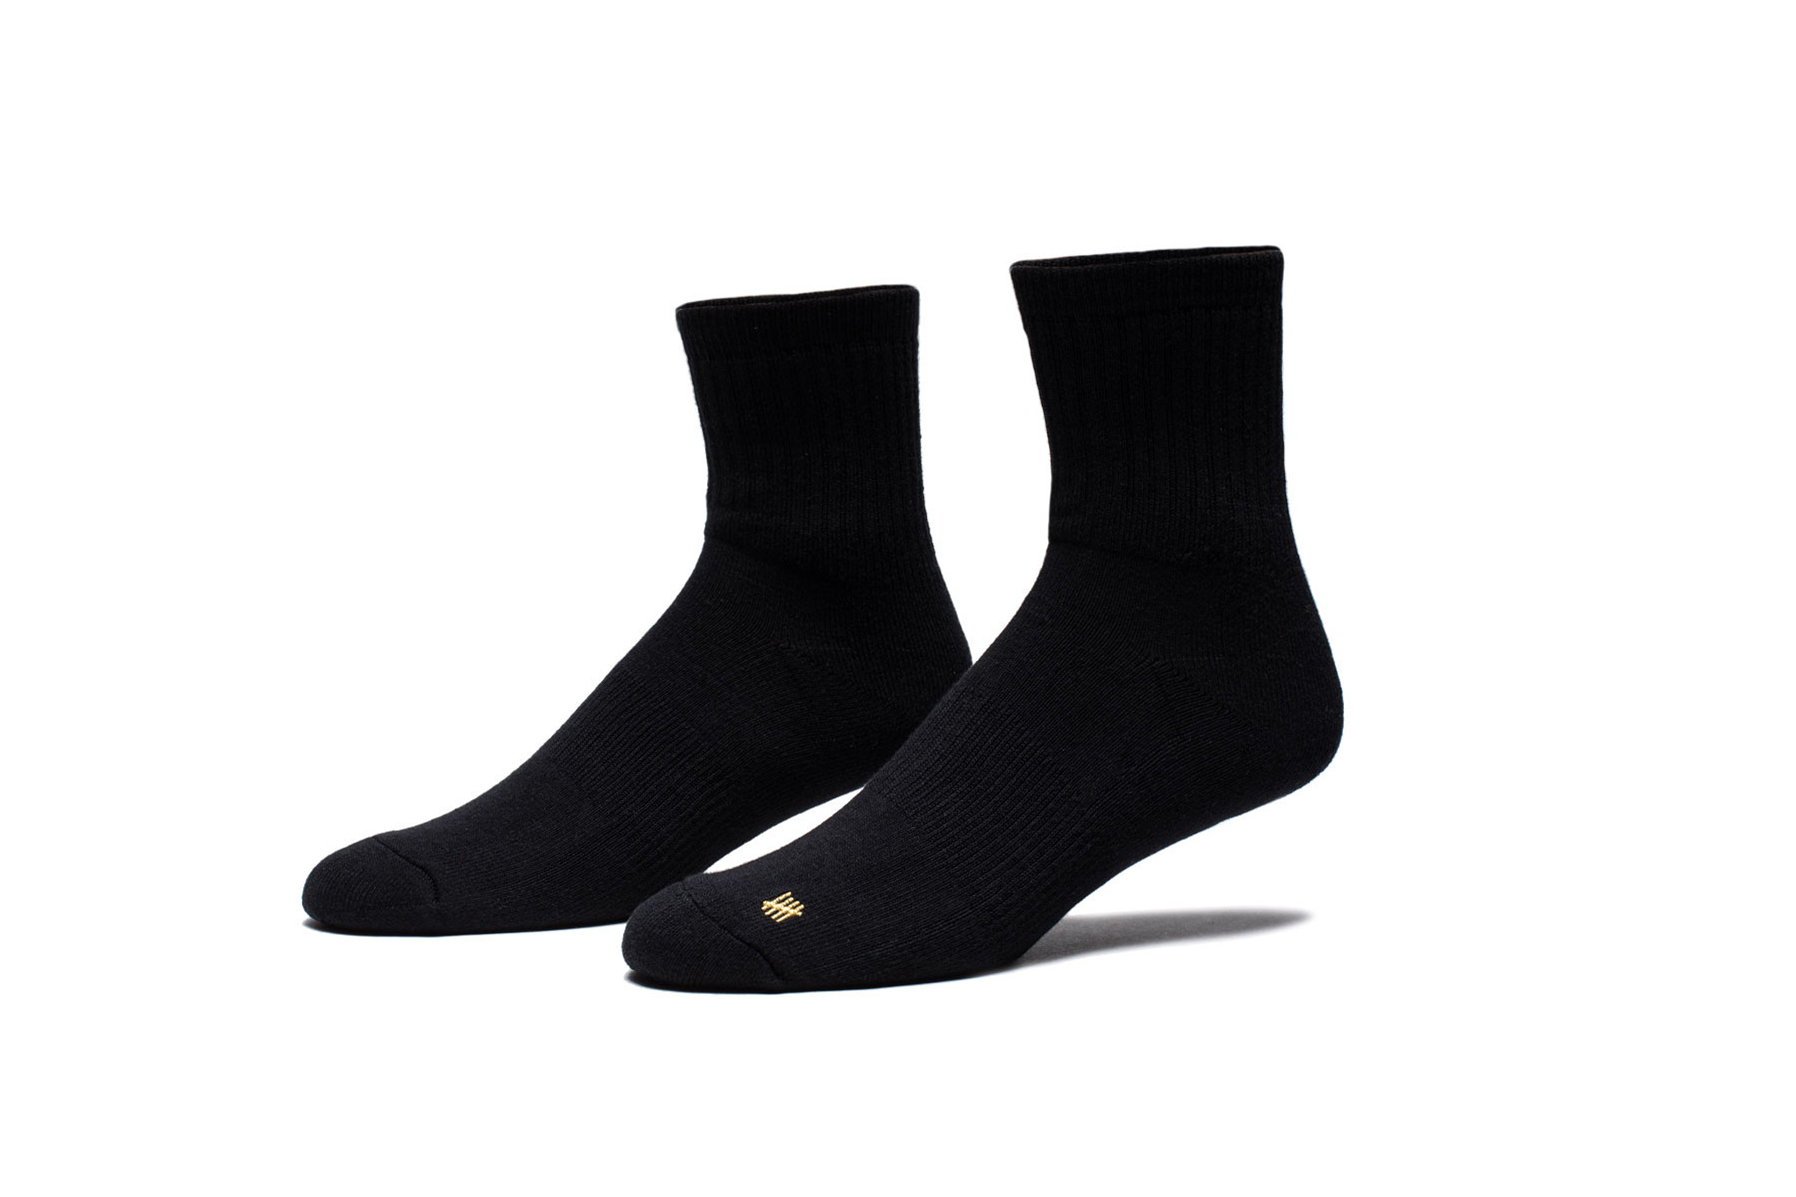 UNDEFEATED Techwear 2017 Spring/Summer Collection Prints Basic Sweats Socks - 3752624